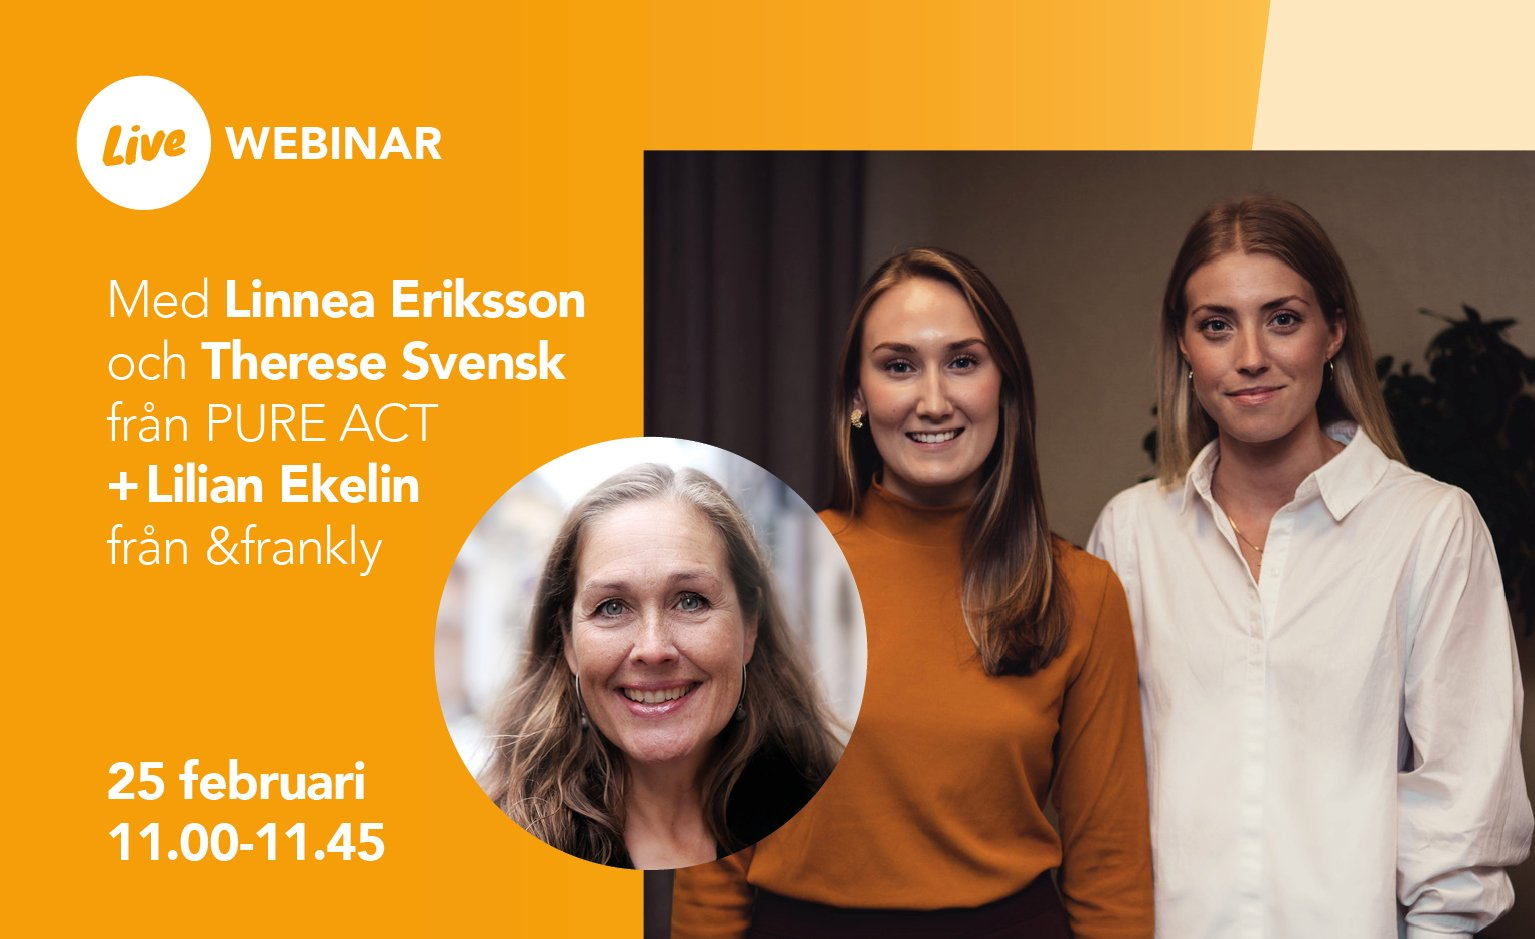 webinar image for mail sustainability